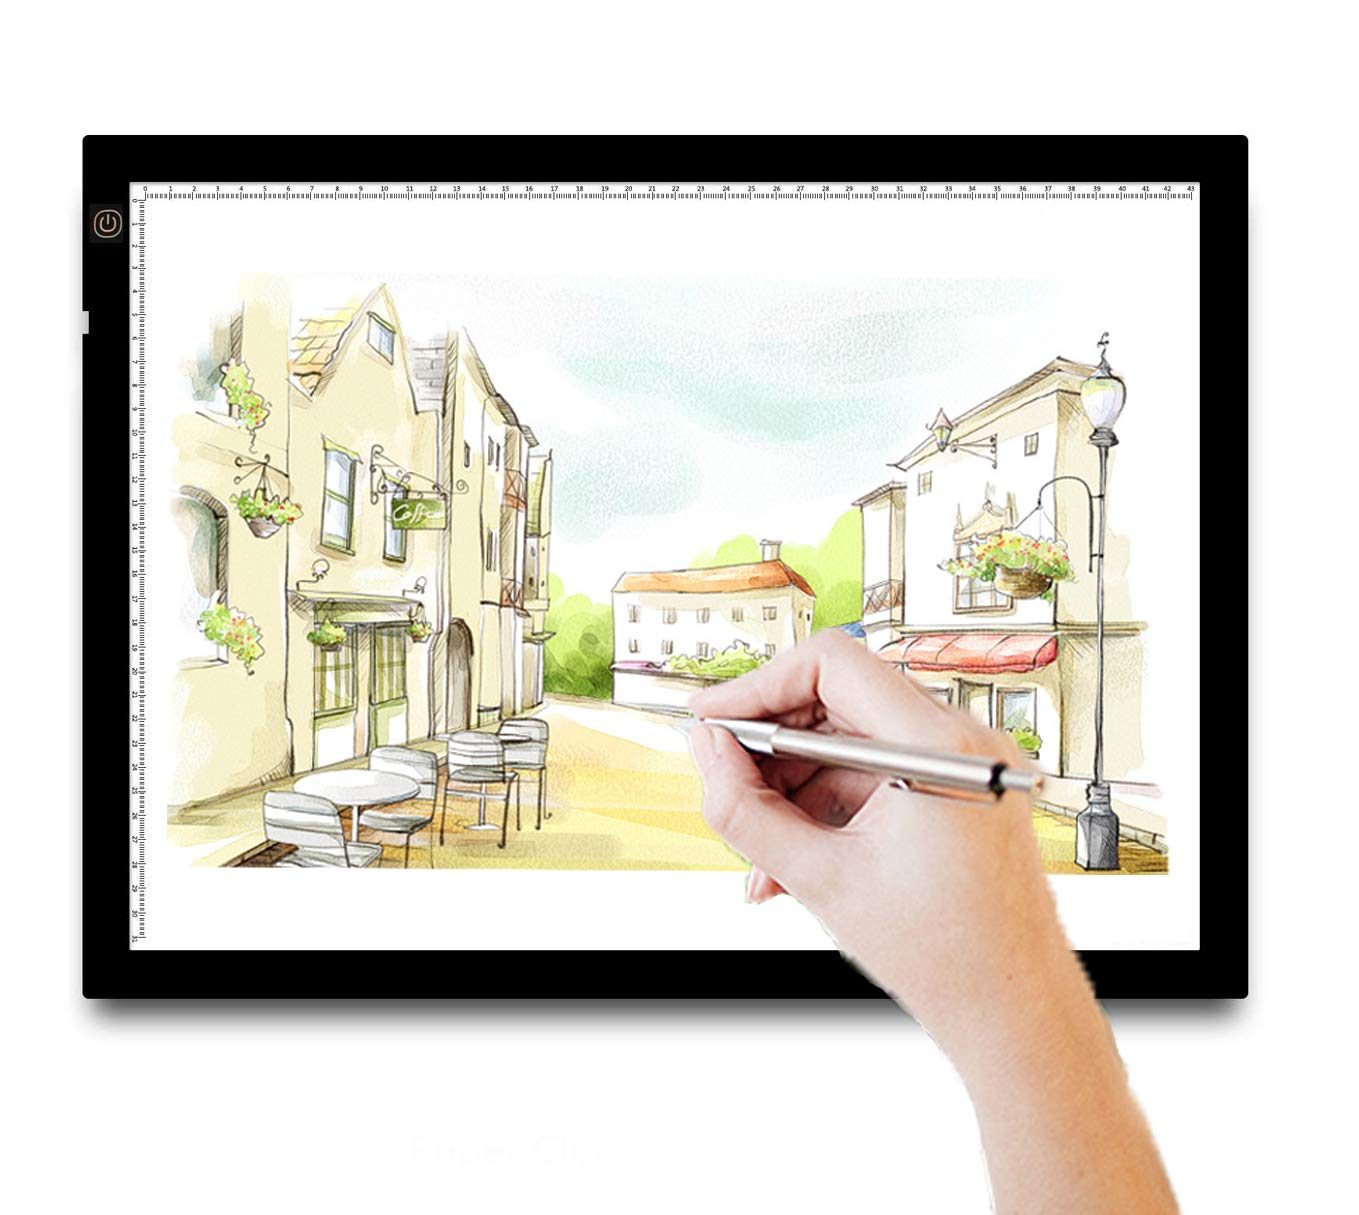 A3 Light Box Tracing Light Box Pad Ultra-Thin Led Light Table Drawing Light Tracer Board with Dimmable Brightness for 5D Diamond Painting, Stencilling, Sketching, X-ray Viewing- USB Powered